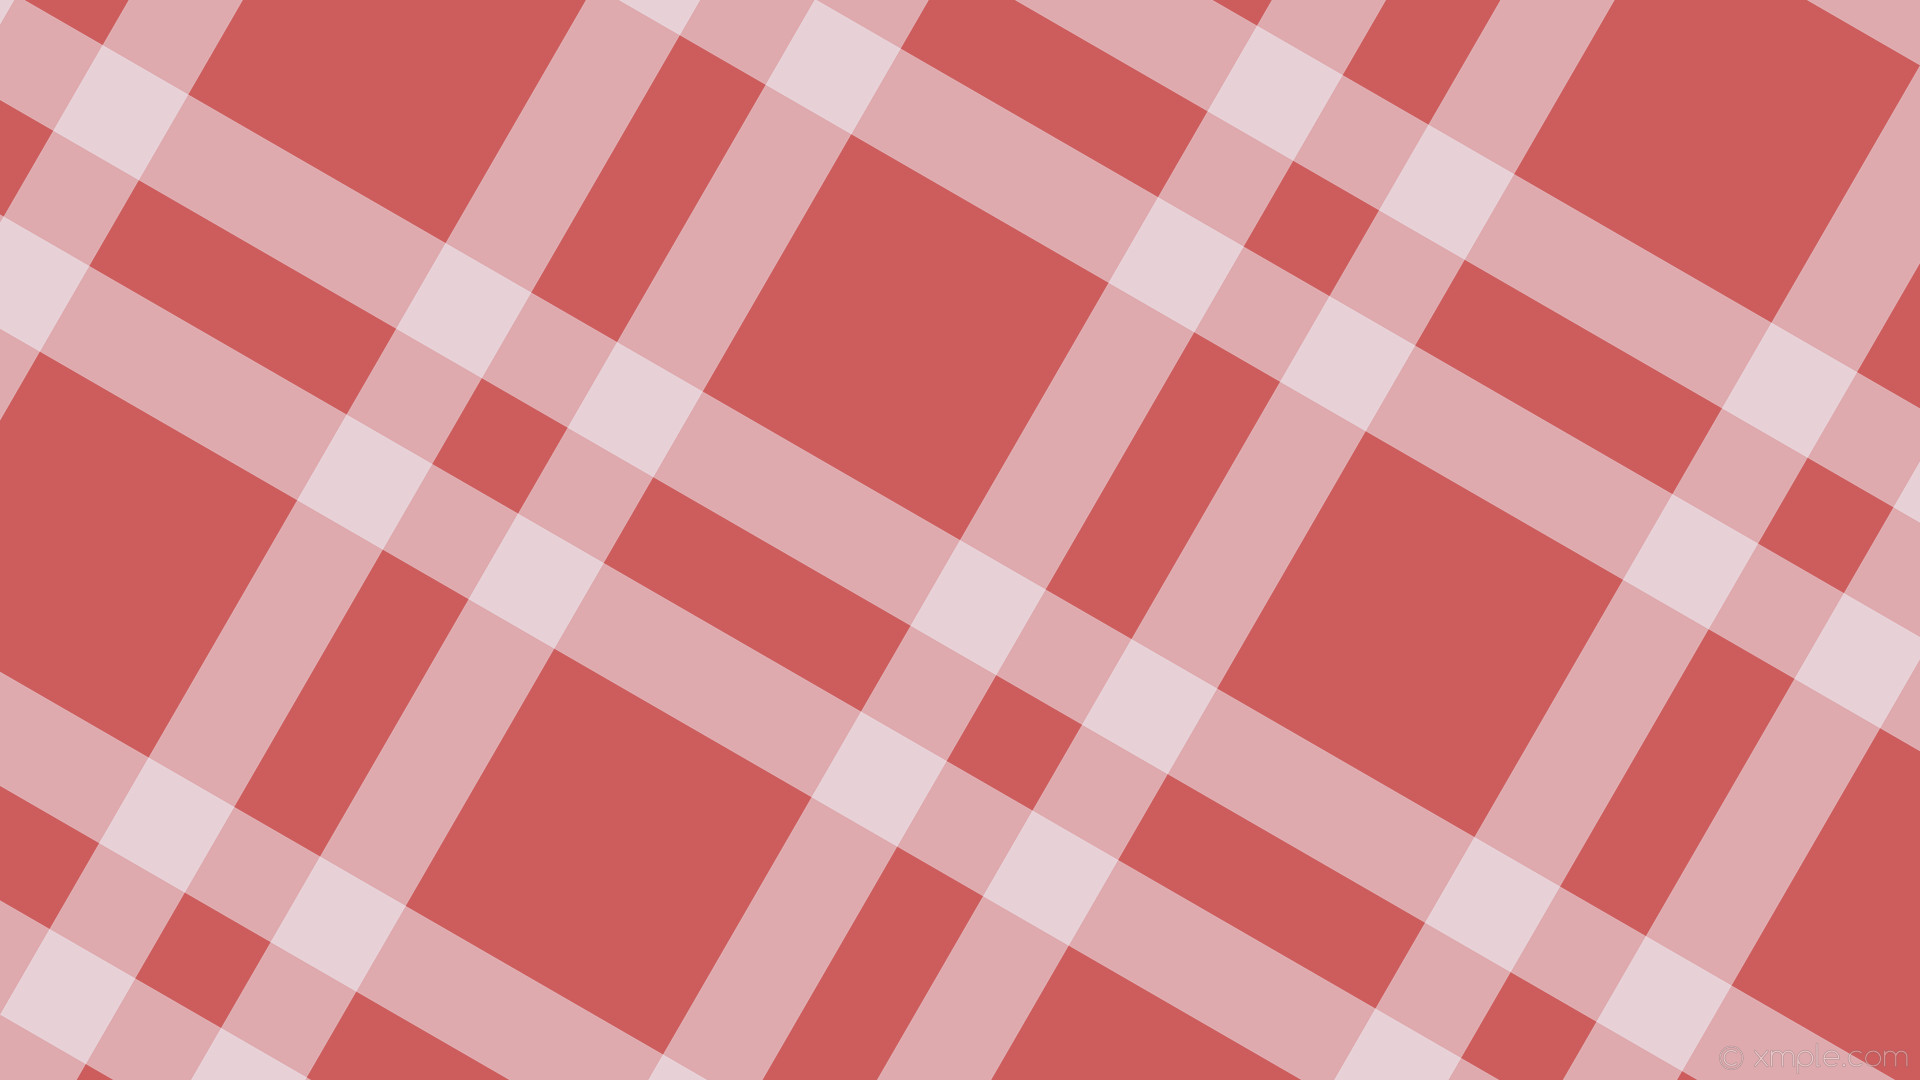 wallpaper gingham red white dual striped indian red alice blue #cd5c5c  #f0f8ff 330°